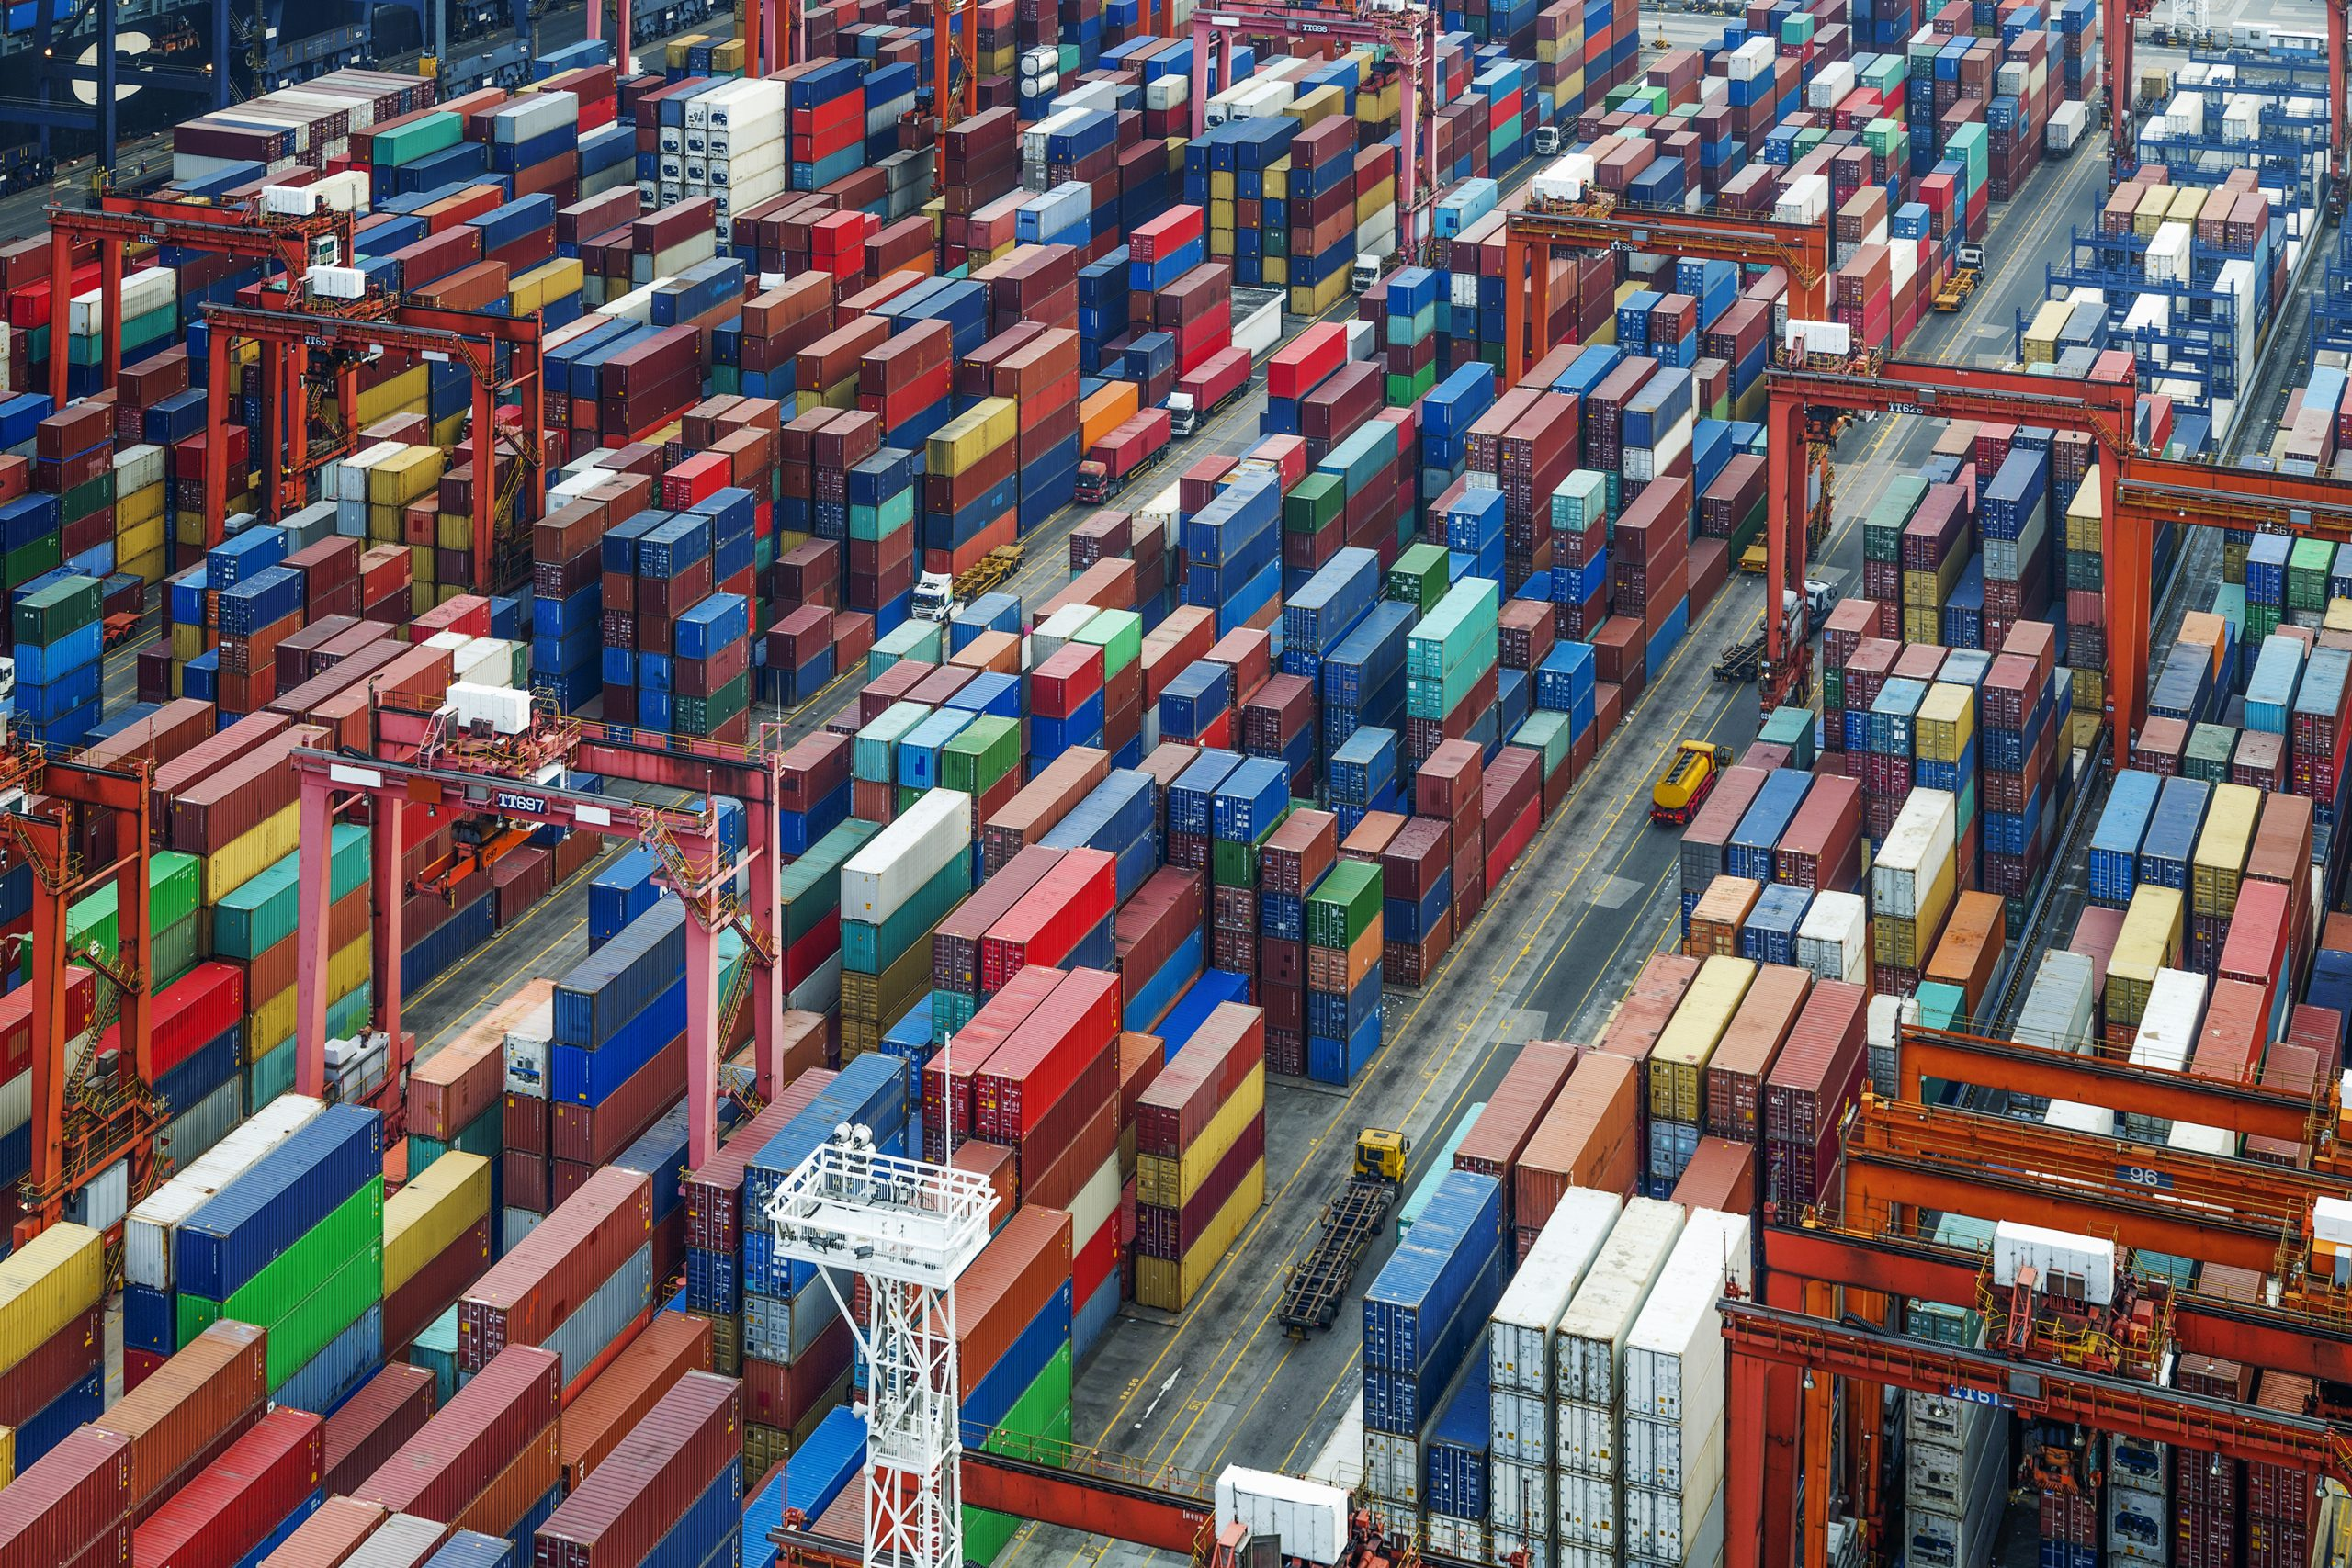 Submit comments to the FMC about demurrage, detention, and service issues